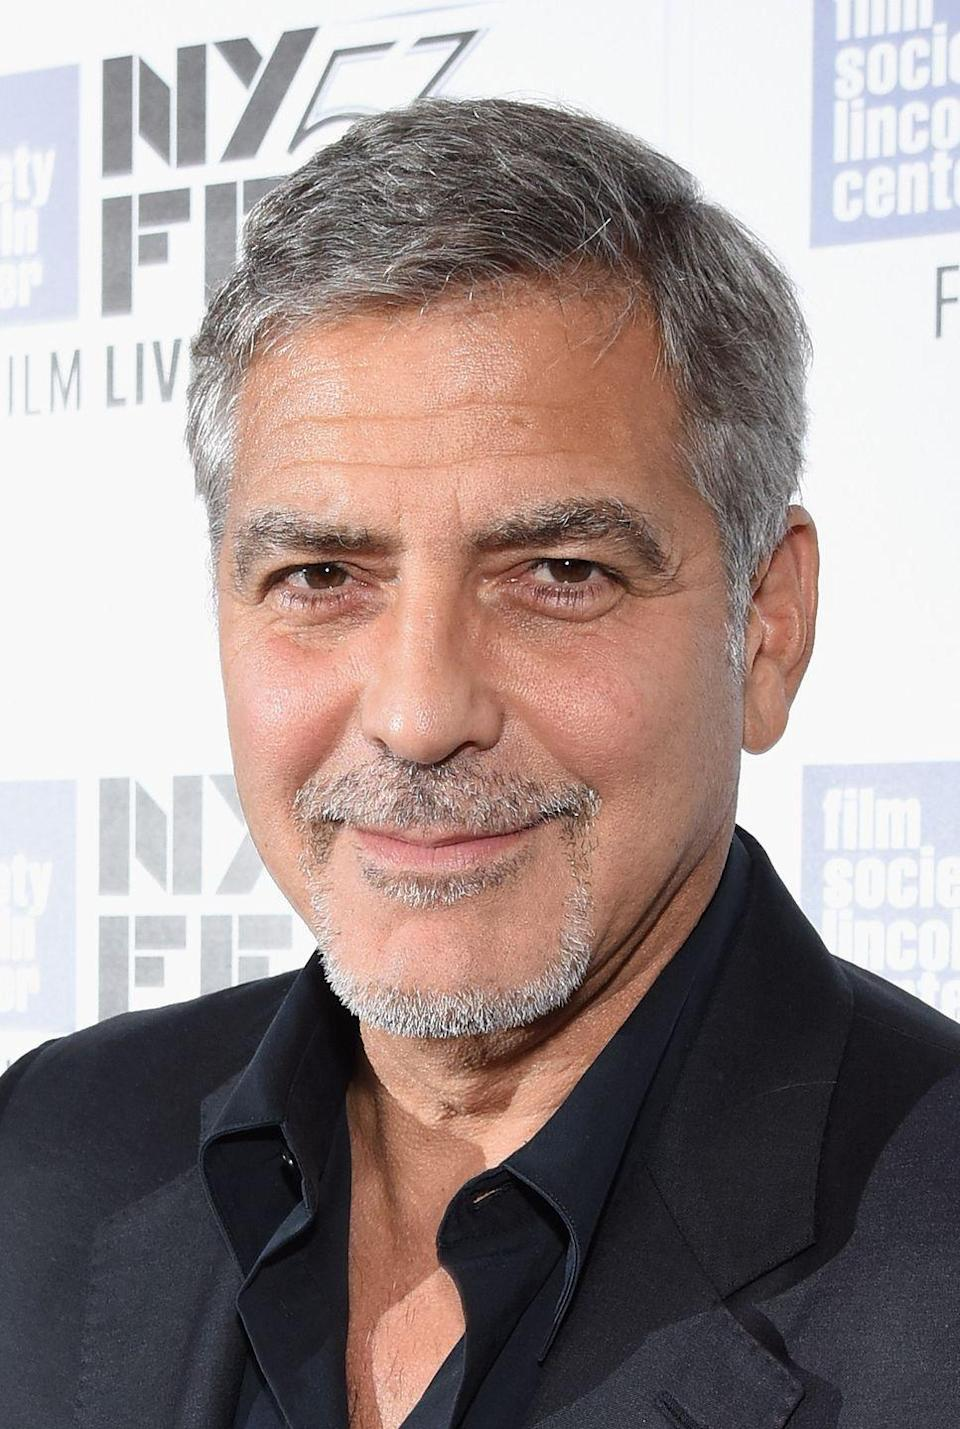 """<p>Even George Clooney doesn't love every role he stars in, and he <a href=""""http://www.vulture.com/2014/10/george-clooney-batman-apologies.html"""" rel=""""nofollow noopener"""" target=""""_blank"""" data-ylk=""""slk:continuously apologizes"""" class=""""link rapid-noclick-resp"""">continuously apologizes</a> for his role in <em>Batman </em>years later<em>. </em>""""Let me just say that I'd actually thought I'd destroyed the franchise until somebody else brought it back years later and changed it. I thought at the time that this was going to be a very good career move. It wasn't."""" </p>"""